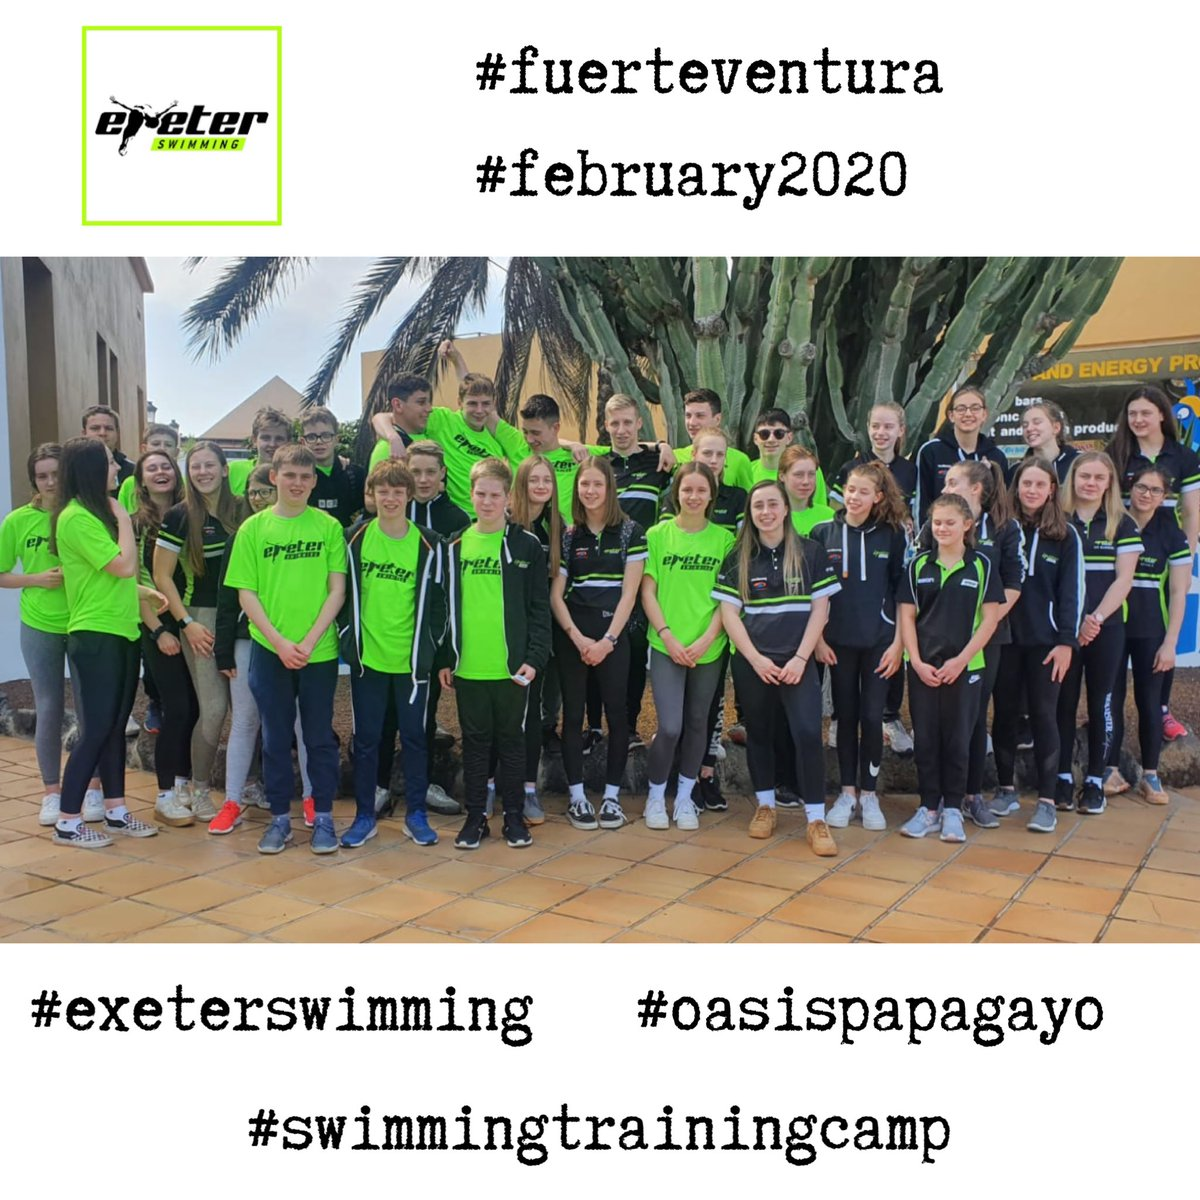 Thank you @exeterswimming for sending us photos of your February swim camp. It looks like you all had a fabulous time! Here is a selection of them! #swimmingtrainingcamps #sportsabroad #exeterswimming #fuerteventura #oasispapagayo #workhard #havefun #makingmemoriesforlifepic.twitter.com/W1SRNIFB3B